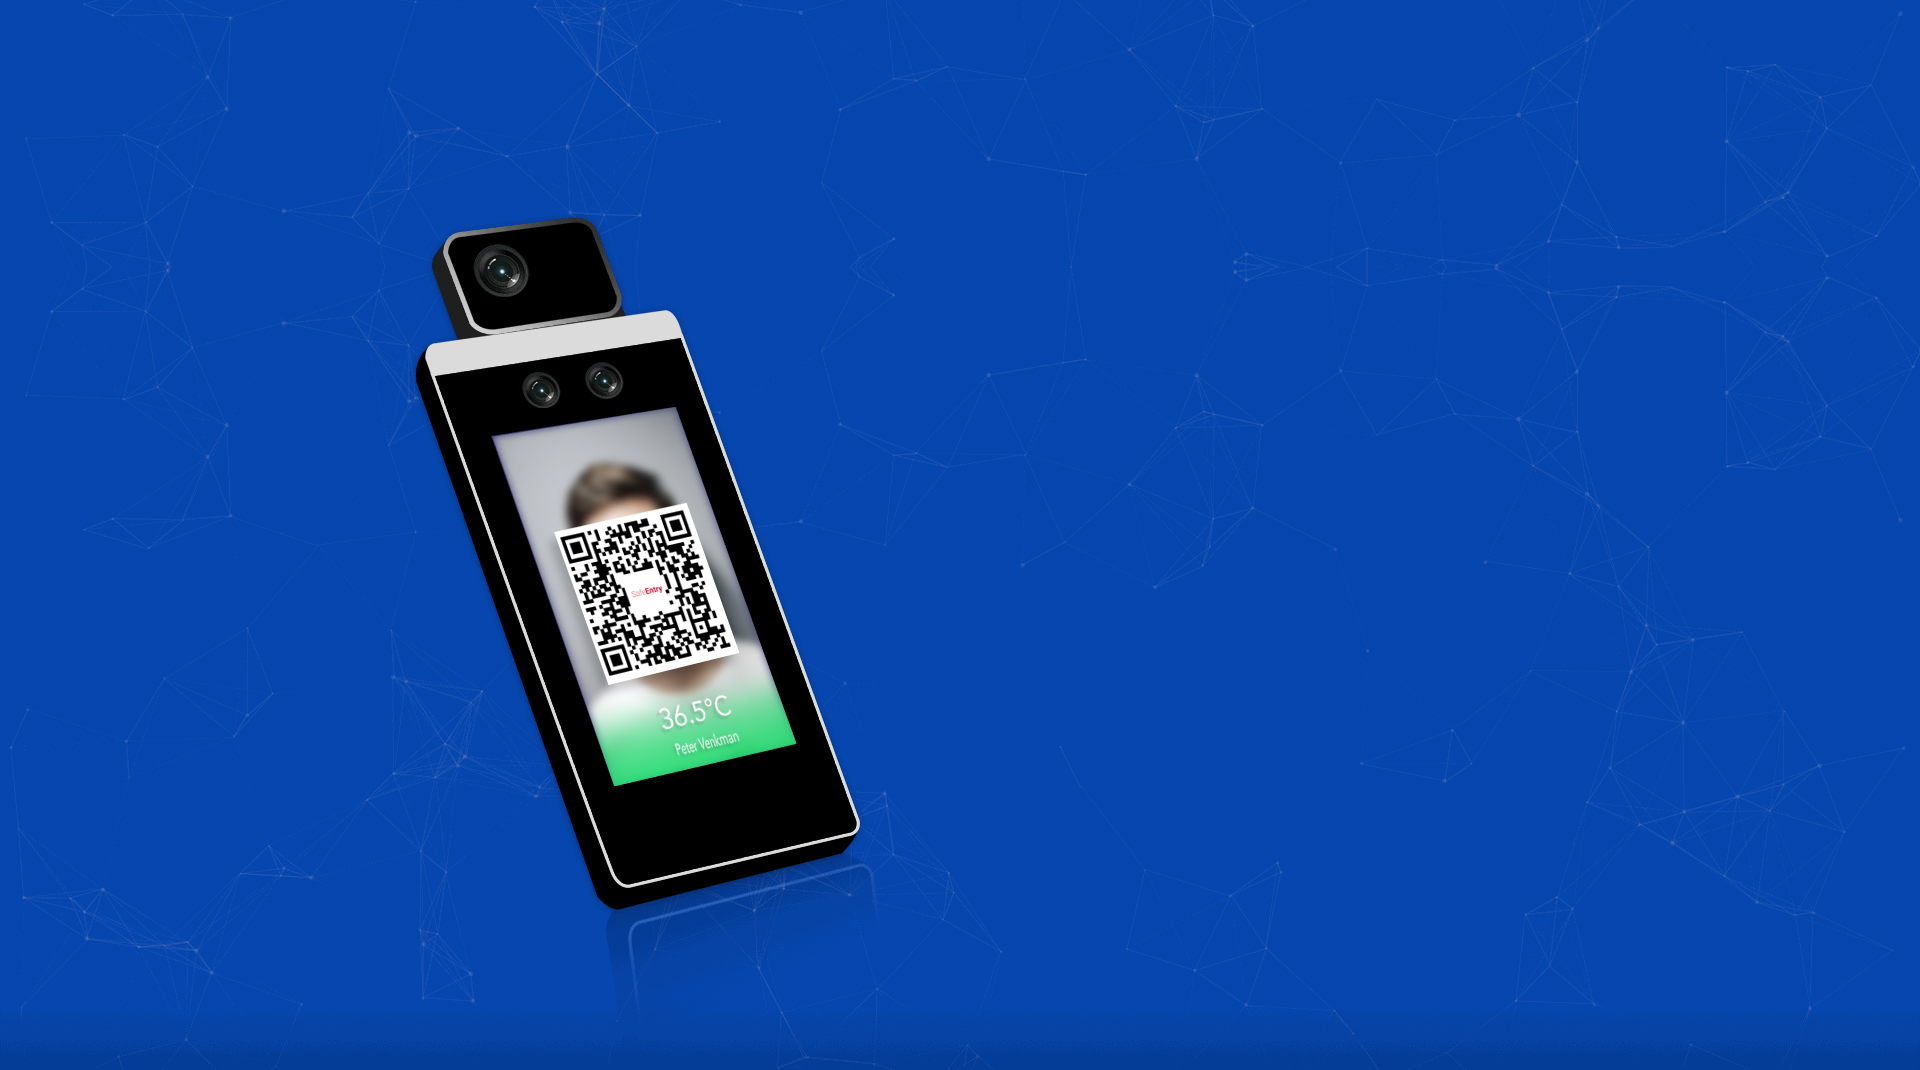 thermal-facial-recognition-scanner